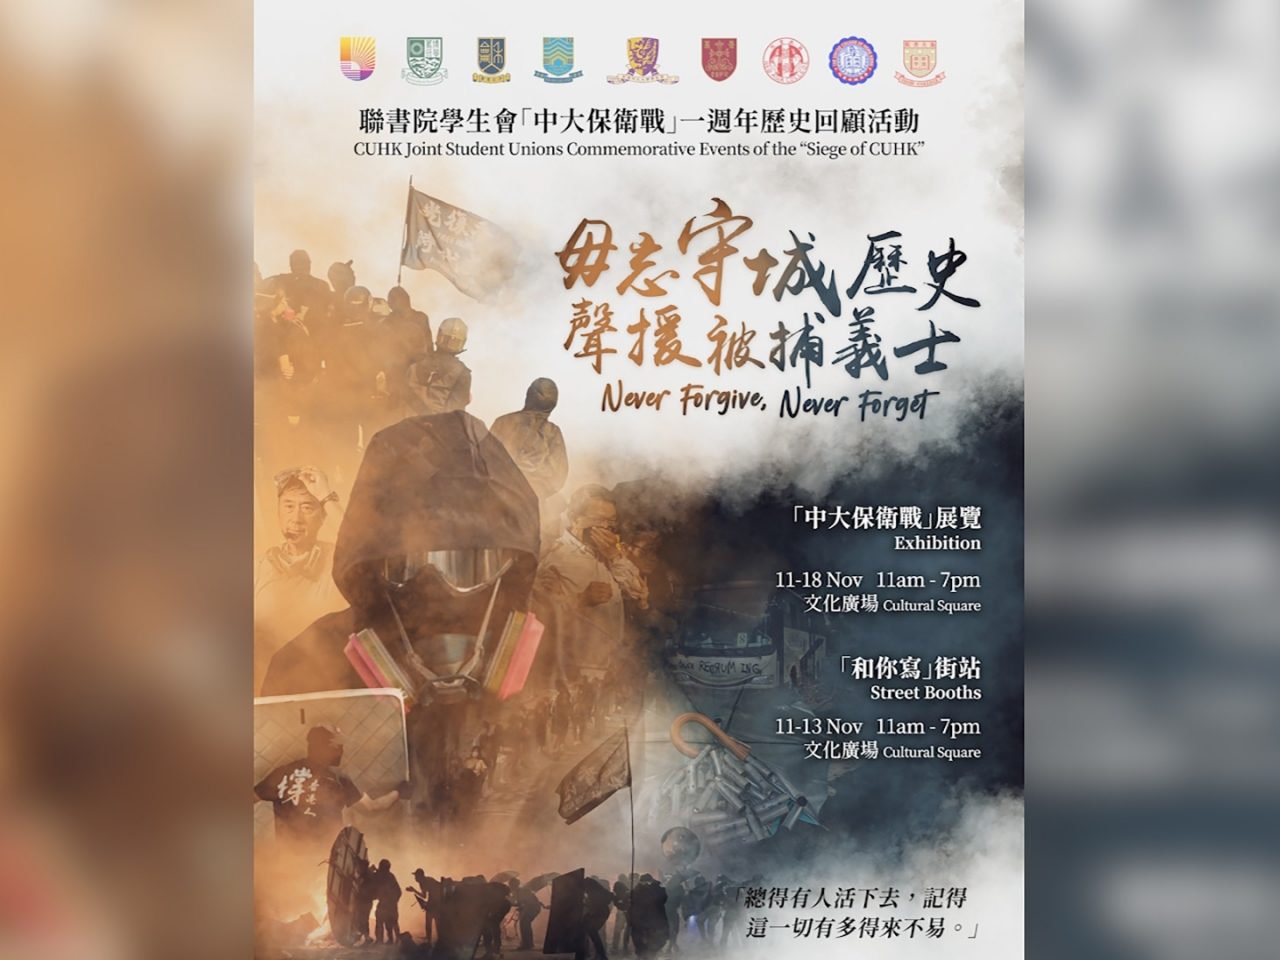 CUHK warns college students over 'illegal' posters